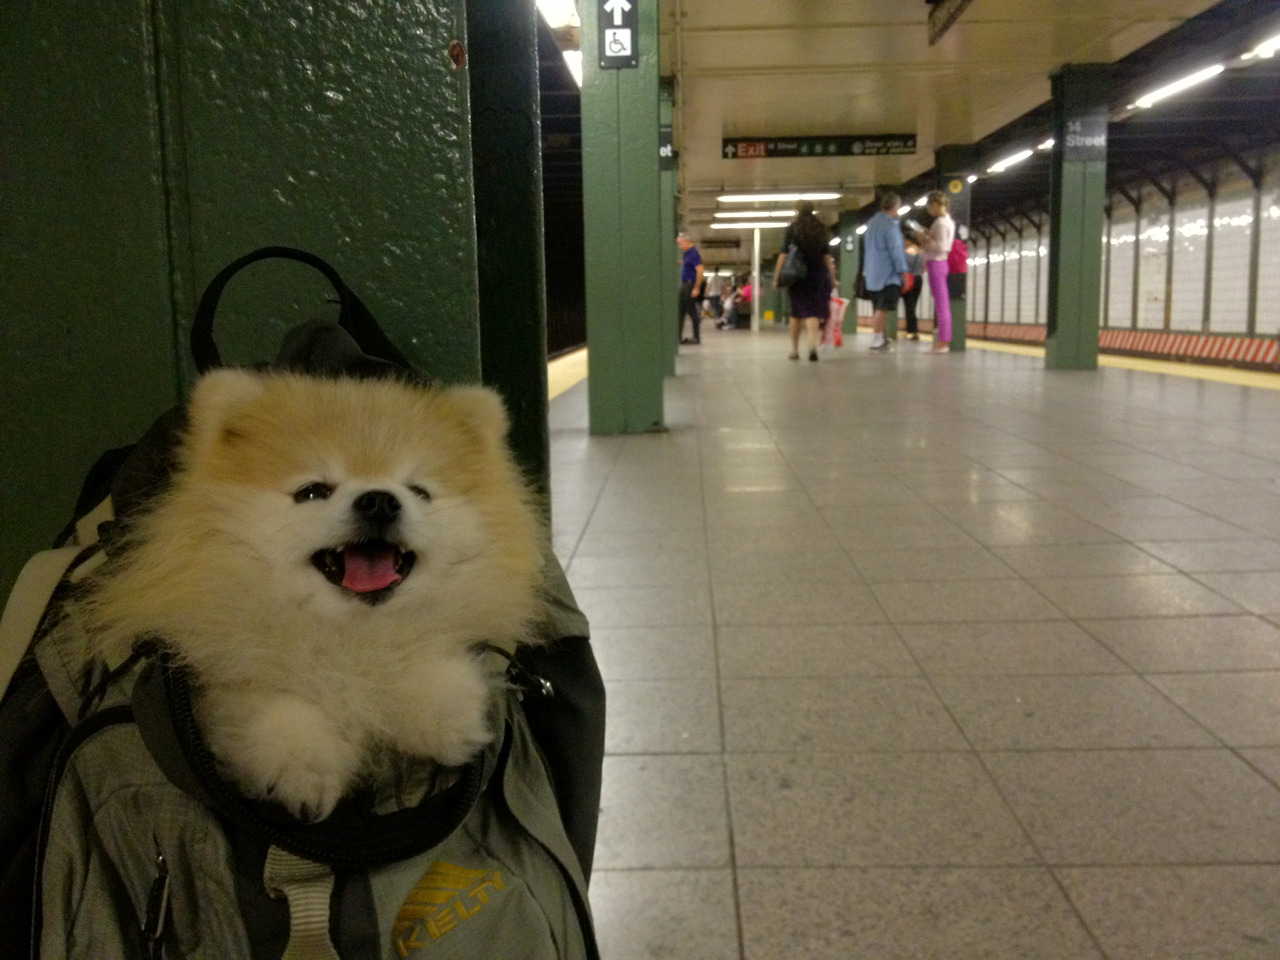 HAI GUYS, DOES THE Q TRAIN STOP HERE?